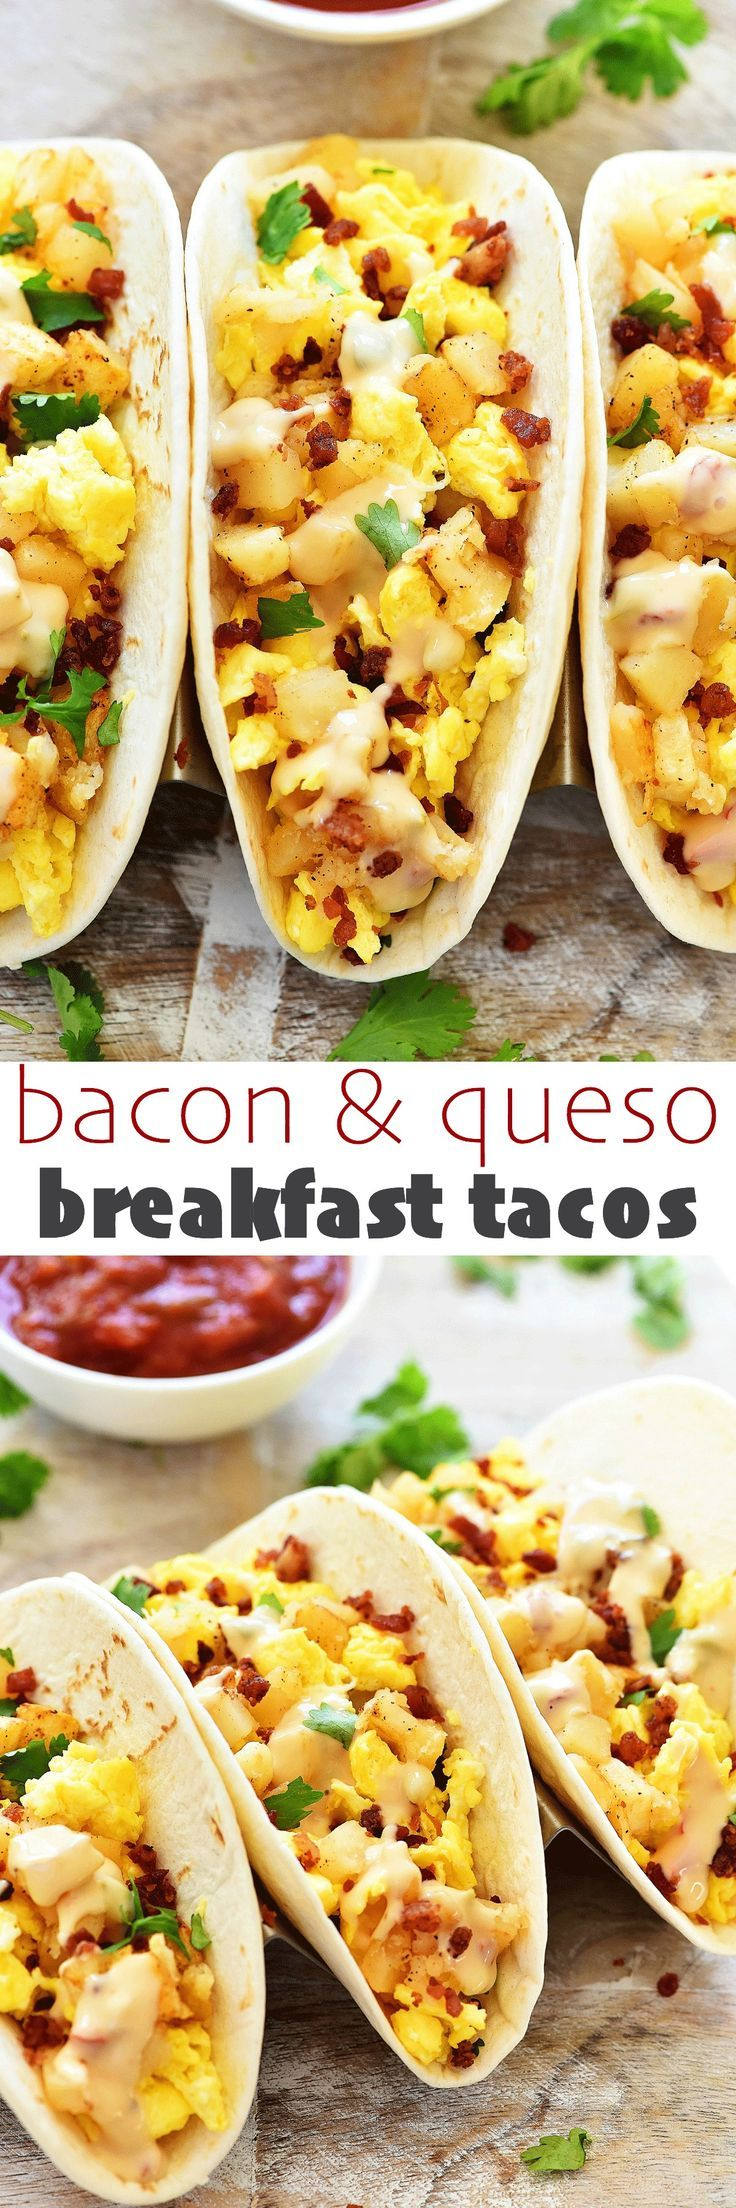 My friends, boy do I have a Taco Tuesday recipe for you! Let me introduce to you my BACON & QUESO BREAKFAST TACOS! Aka. my latest creation that was lip-smackin' amazing!! I love me a good taco. And I'll eat them anytime of the day… for lunch, dinner and even breakfast! These breakfast tacos are filled with... Read More »